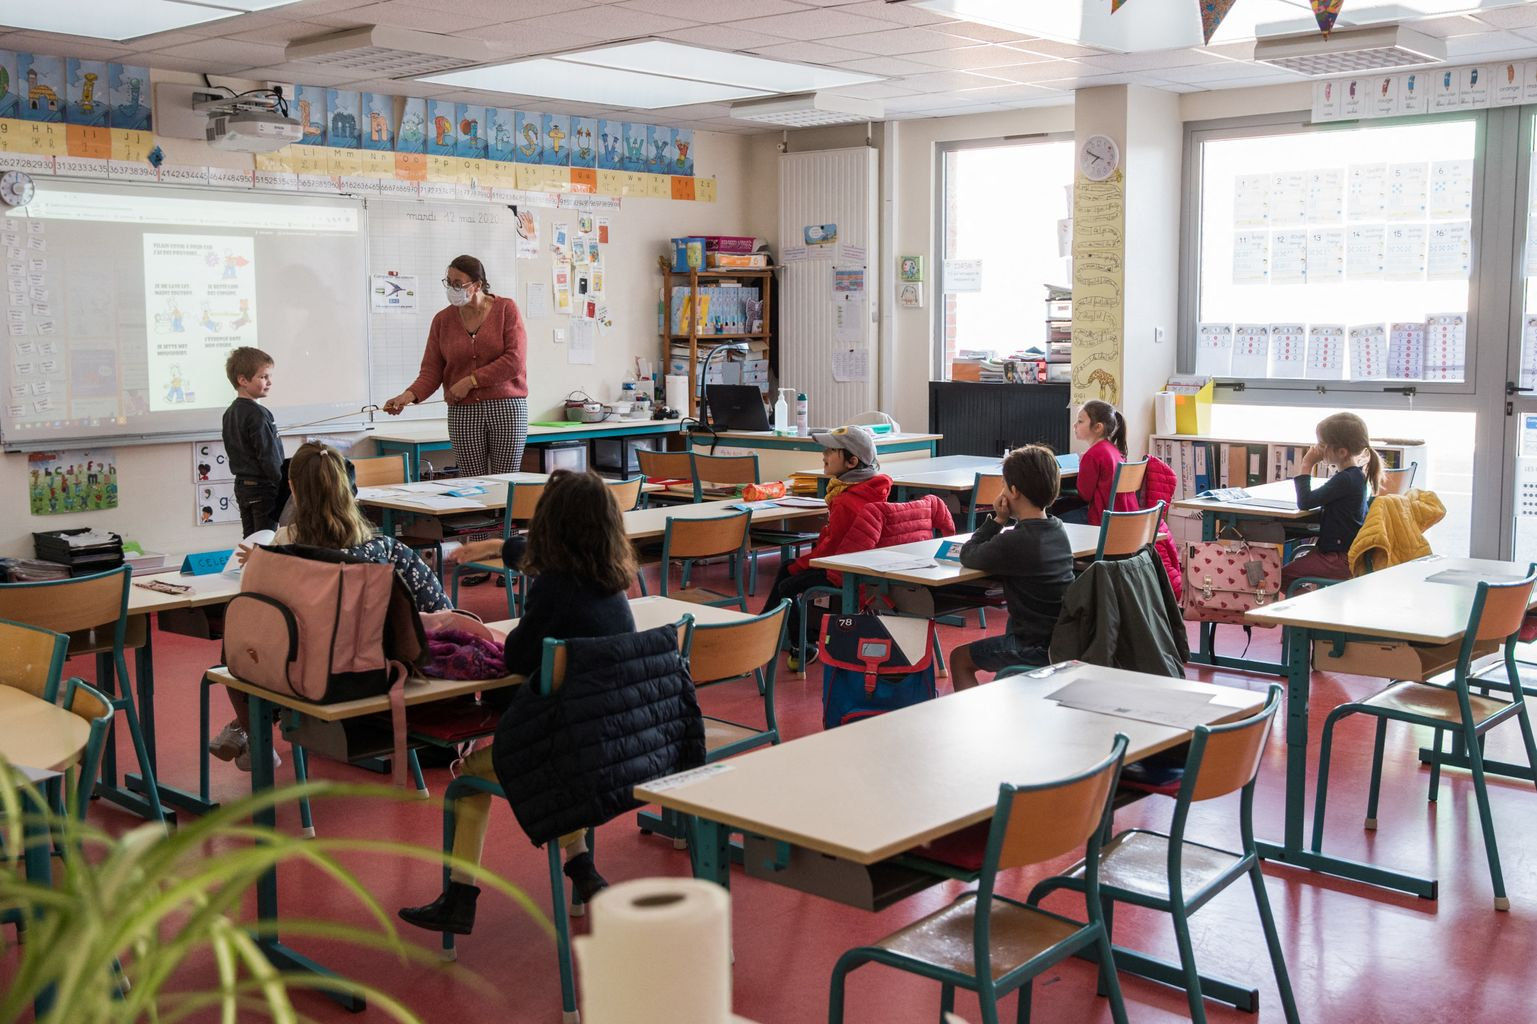 Sheffield City Council defies government and tell schools NOT to reopen on Monday